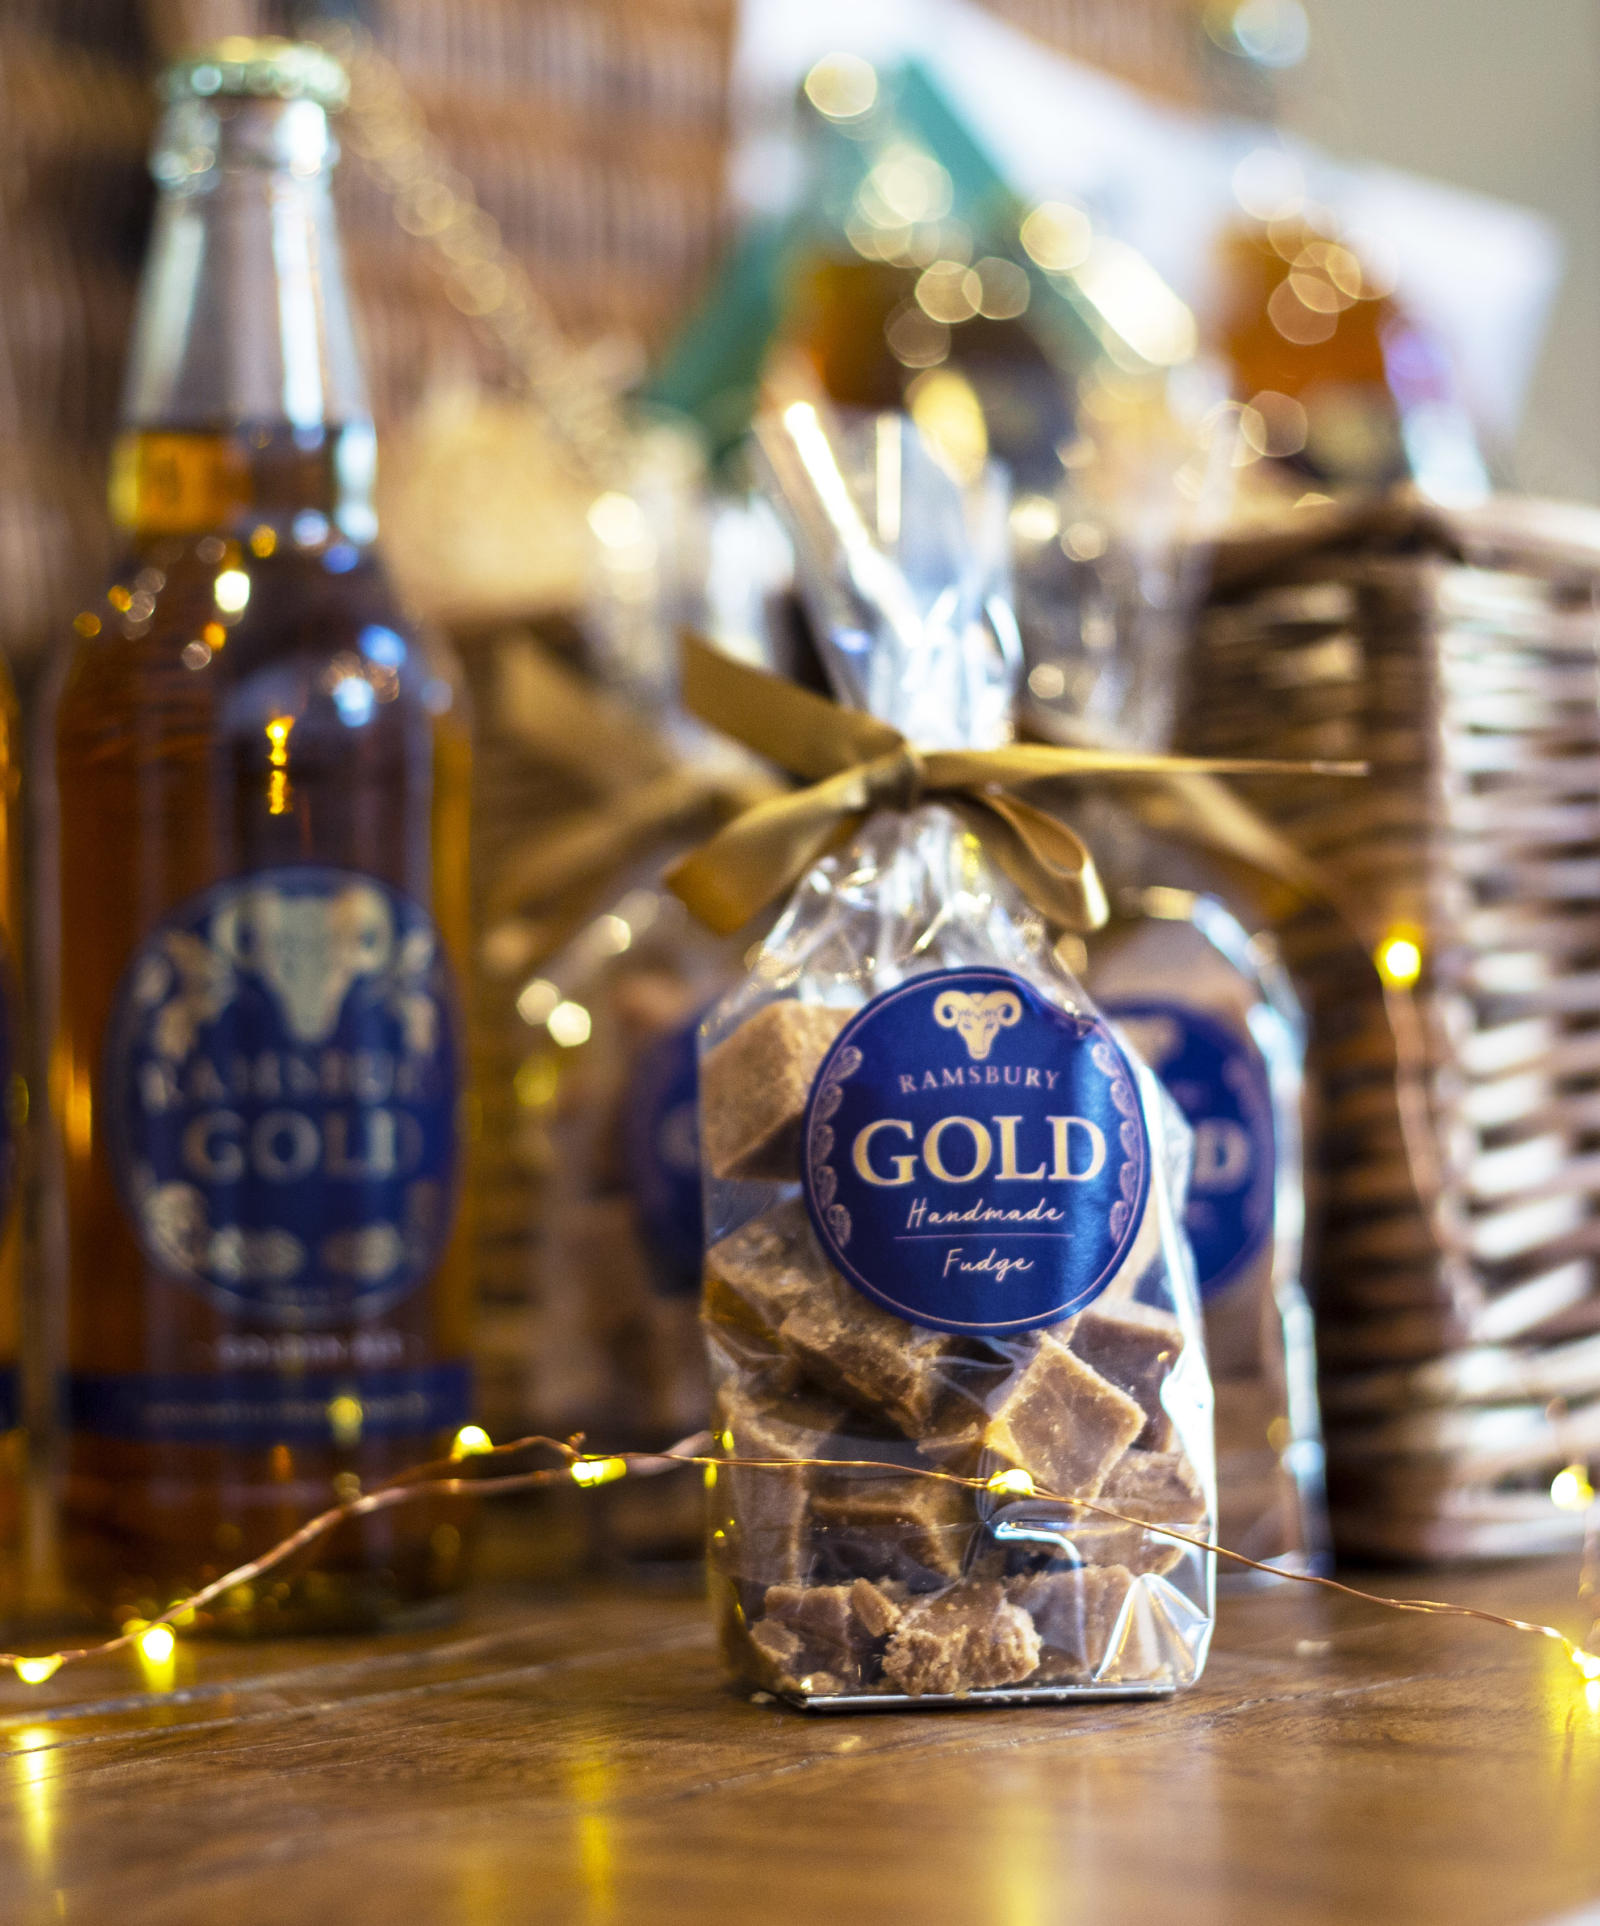 Ramsbury Gold Fudge